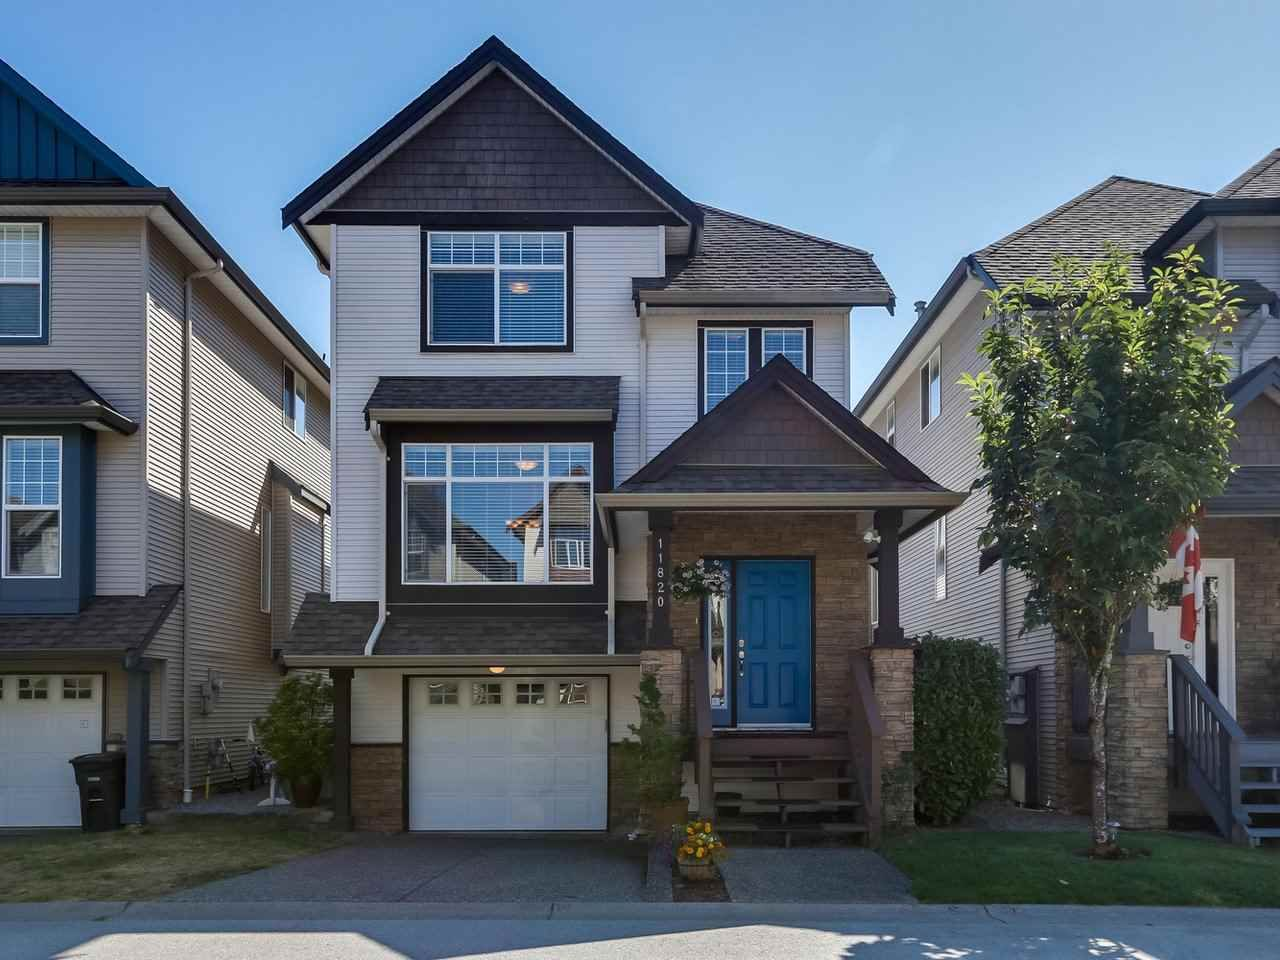 Main Photo: 11820 191A STREET in Pitt Meadows: Central Meadows House for sale : MLS®# R2295649